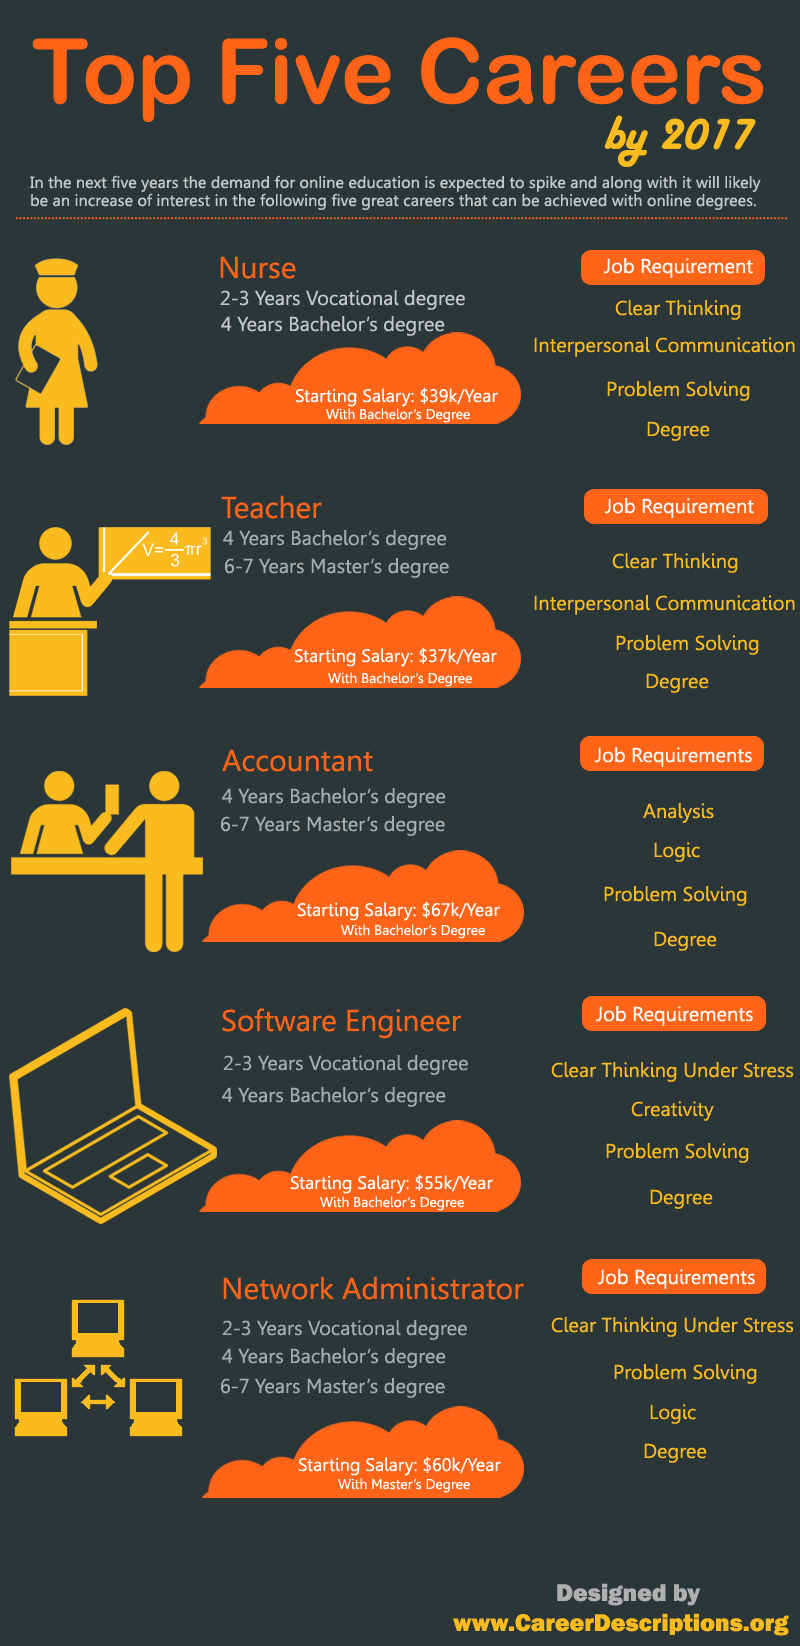 Top Five Careers By 2017 Infographic Infographic List